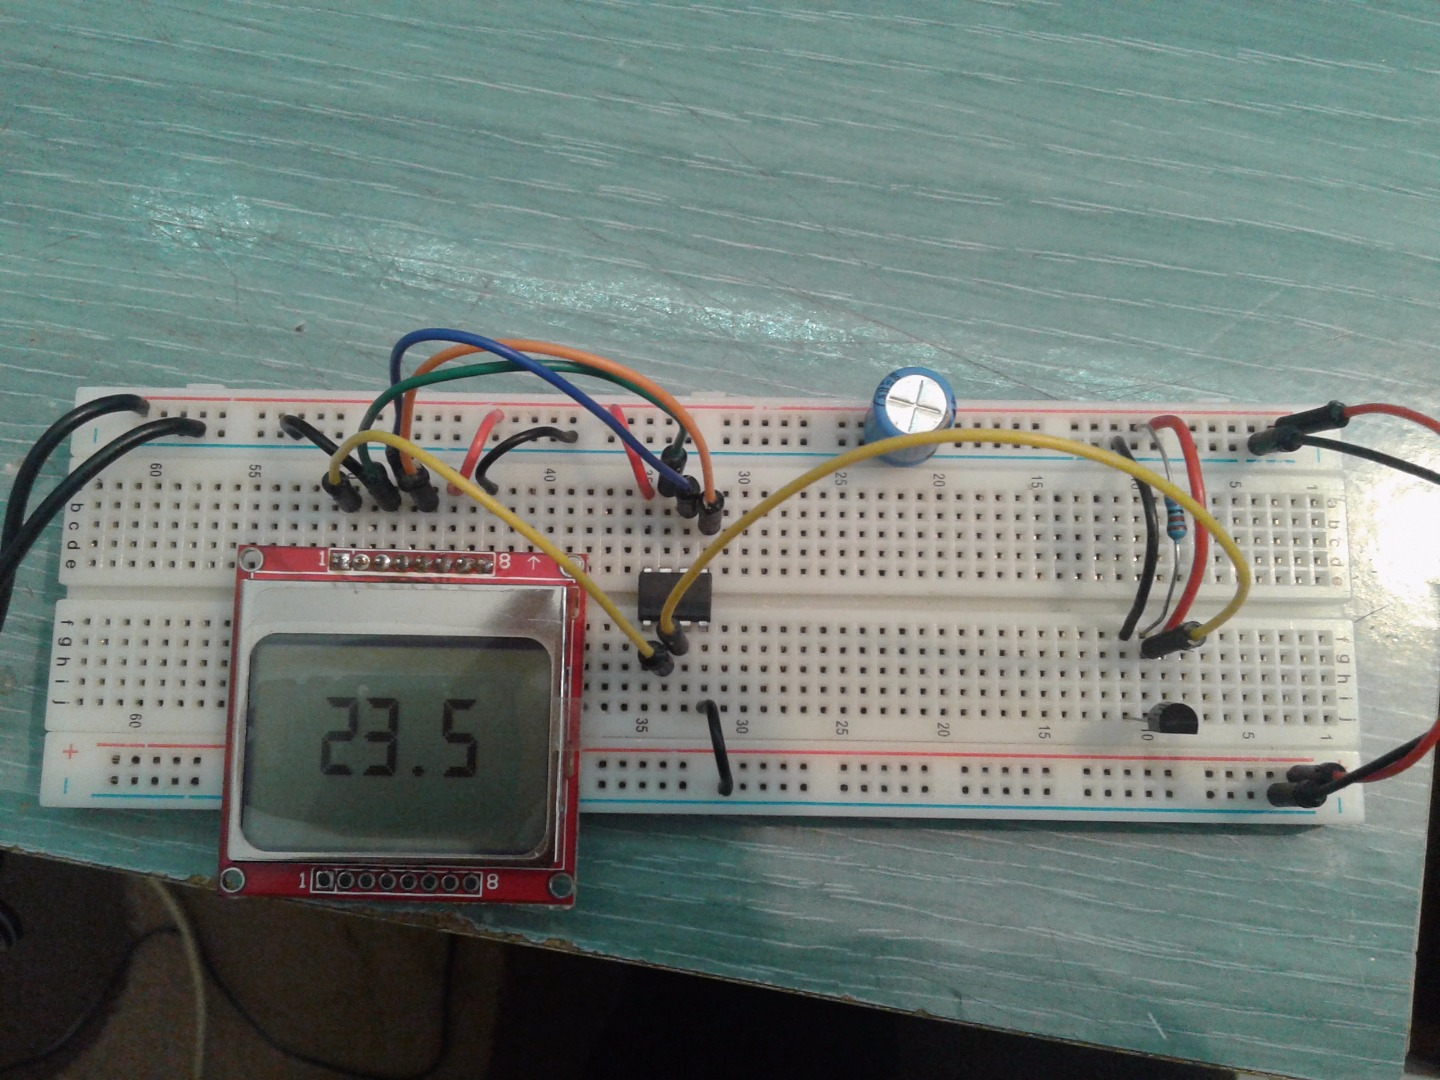 Picture of Attiny85 5110LCD DS18B20 Thermometer